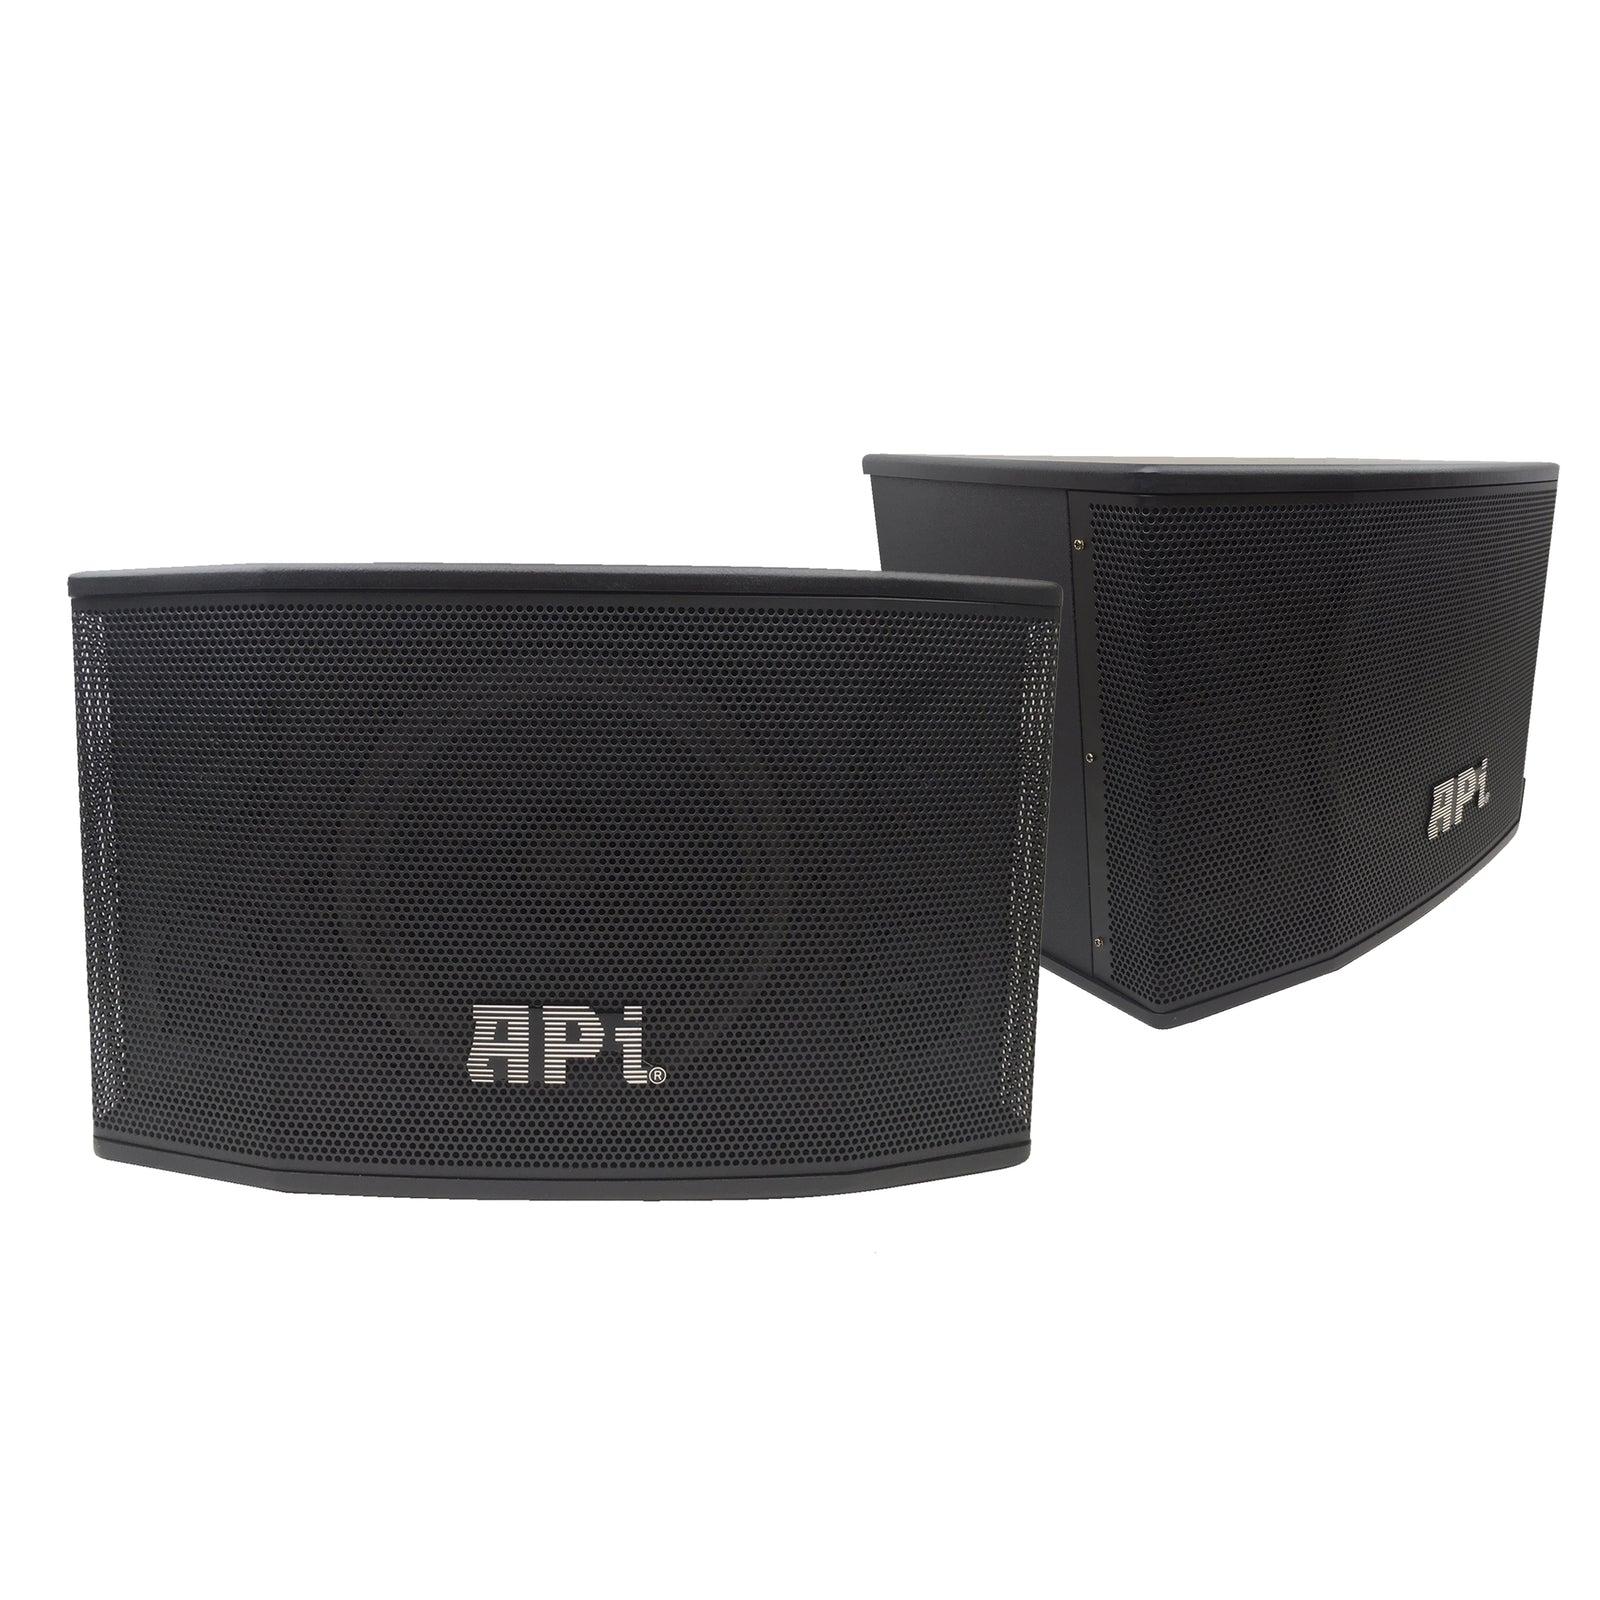 APi K-909 3-Way 500w Karaoke Speakers